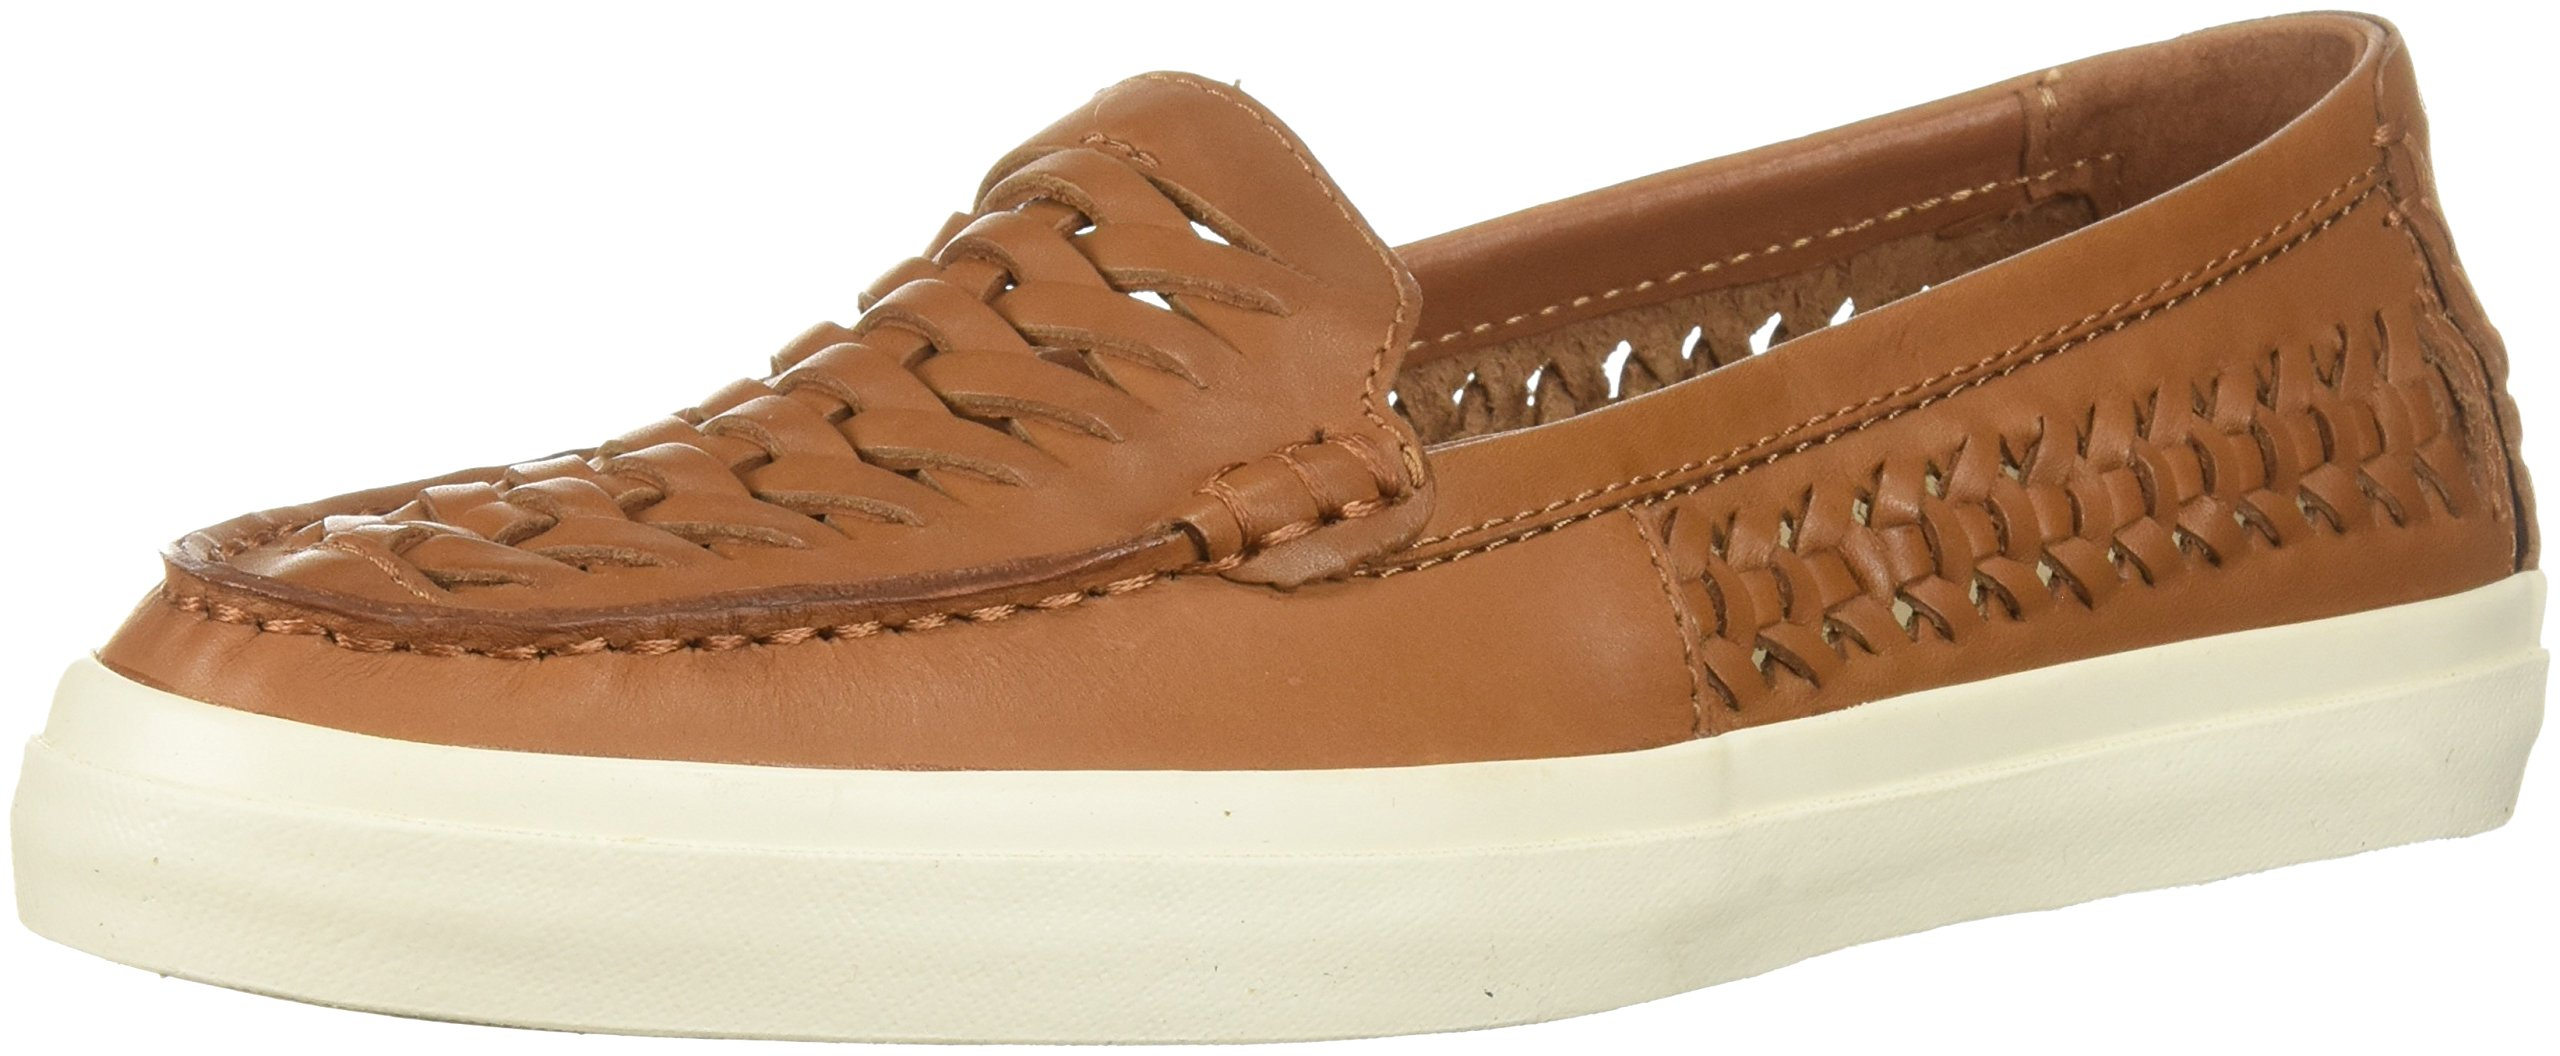 Cole Haan Women's Pinch Weekender LX Hurarche Penny Loafer, British Tan Leather, 10.5 B US